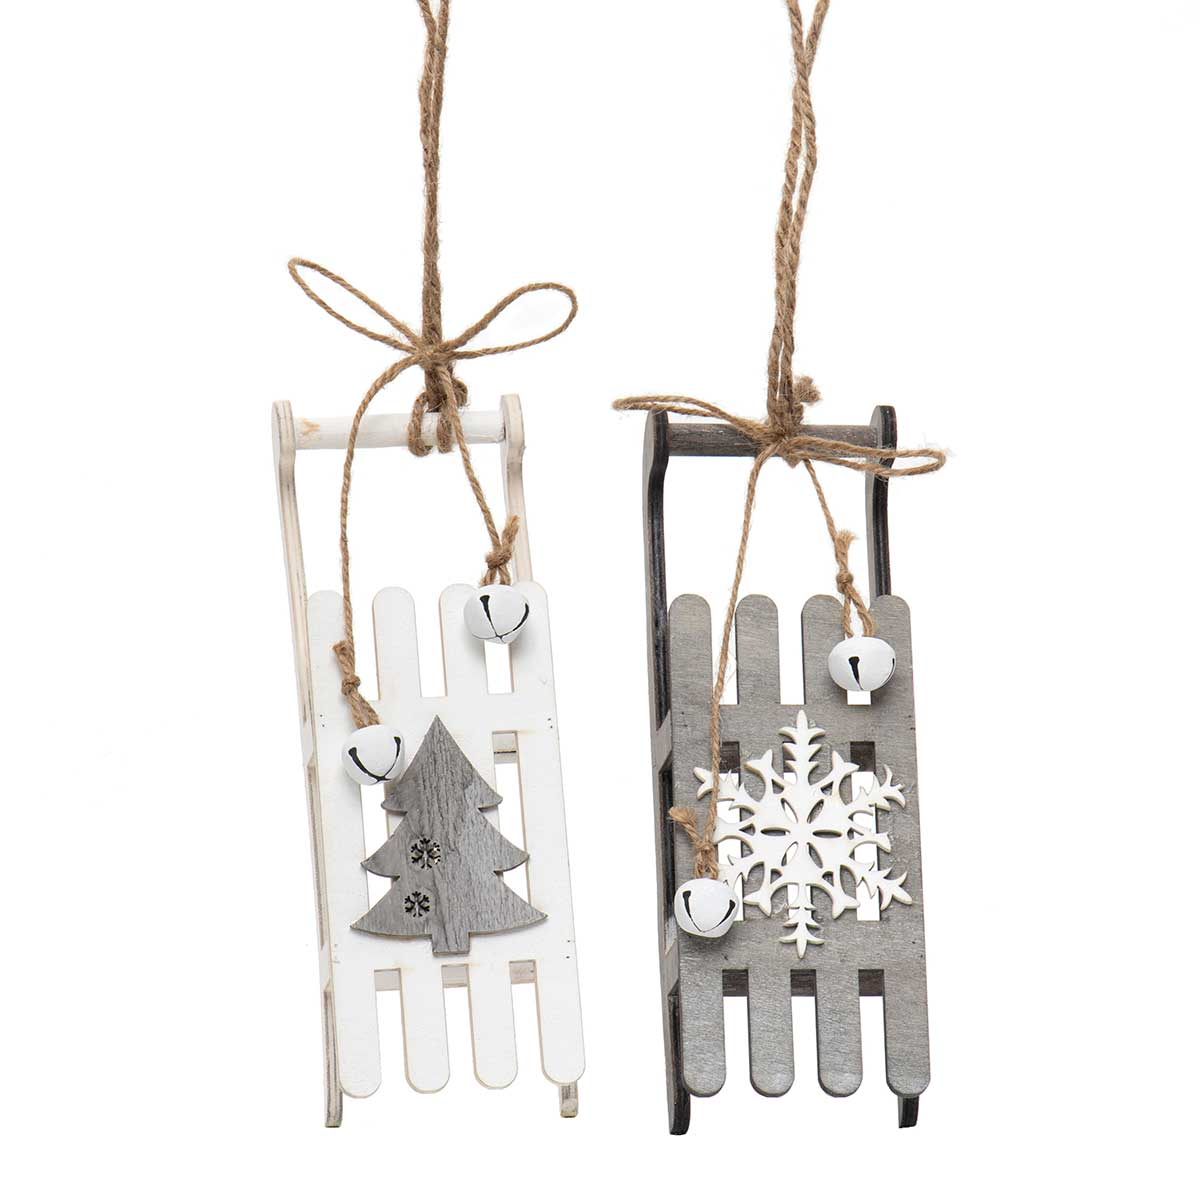 GREY/WHITE WOOD SLED ORNAMENT WITH